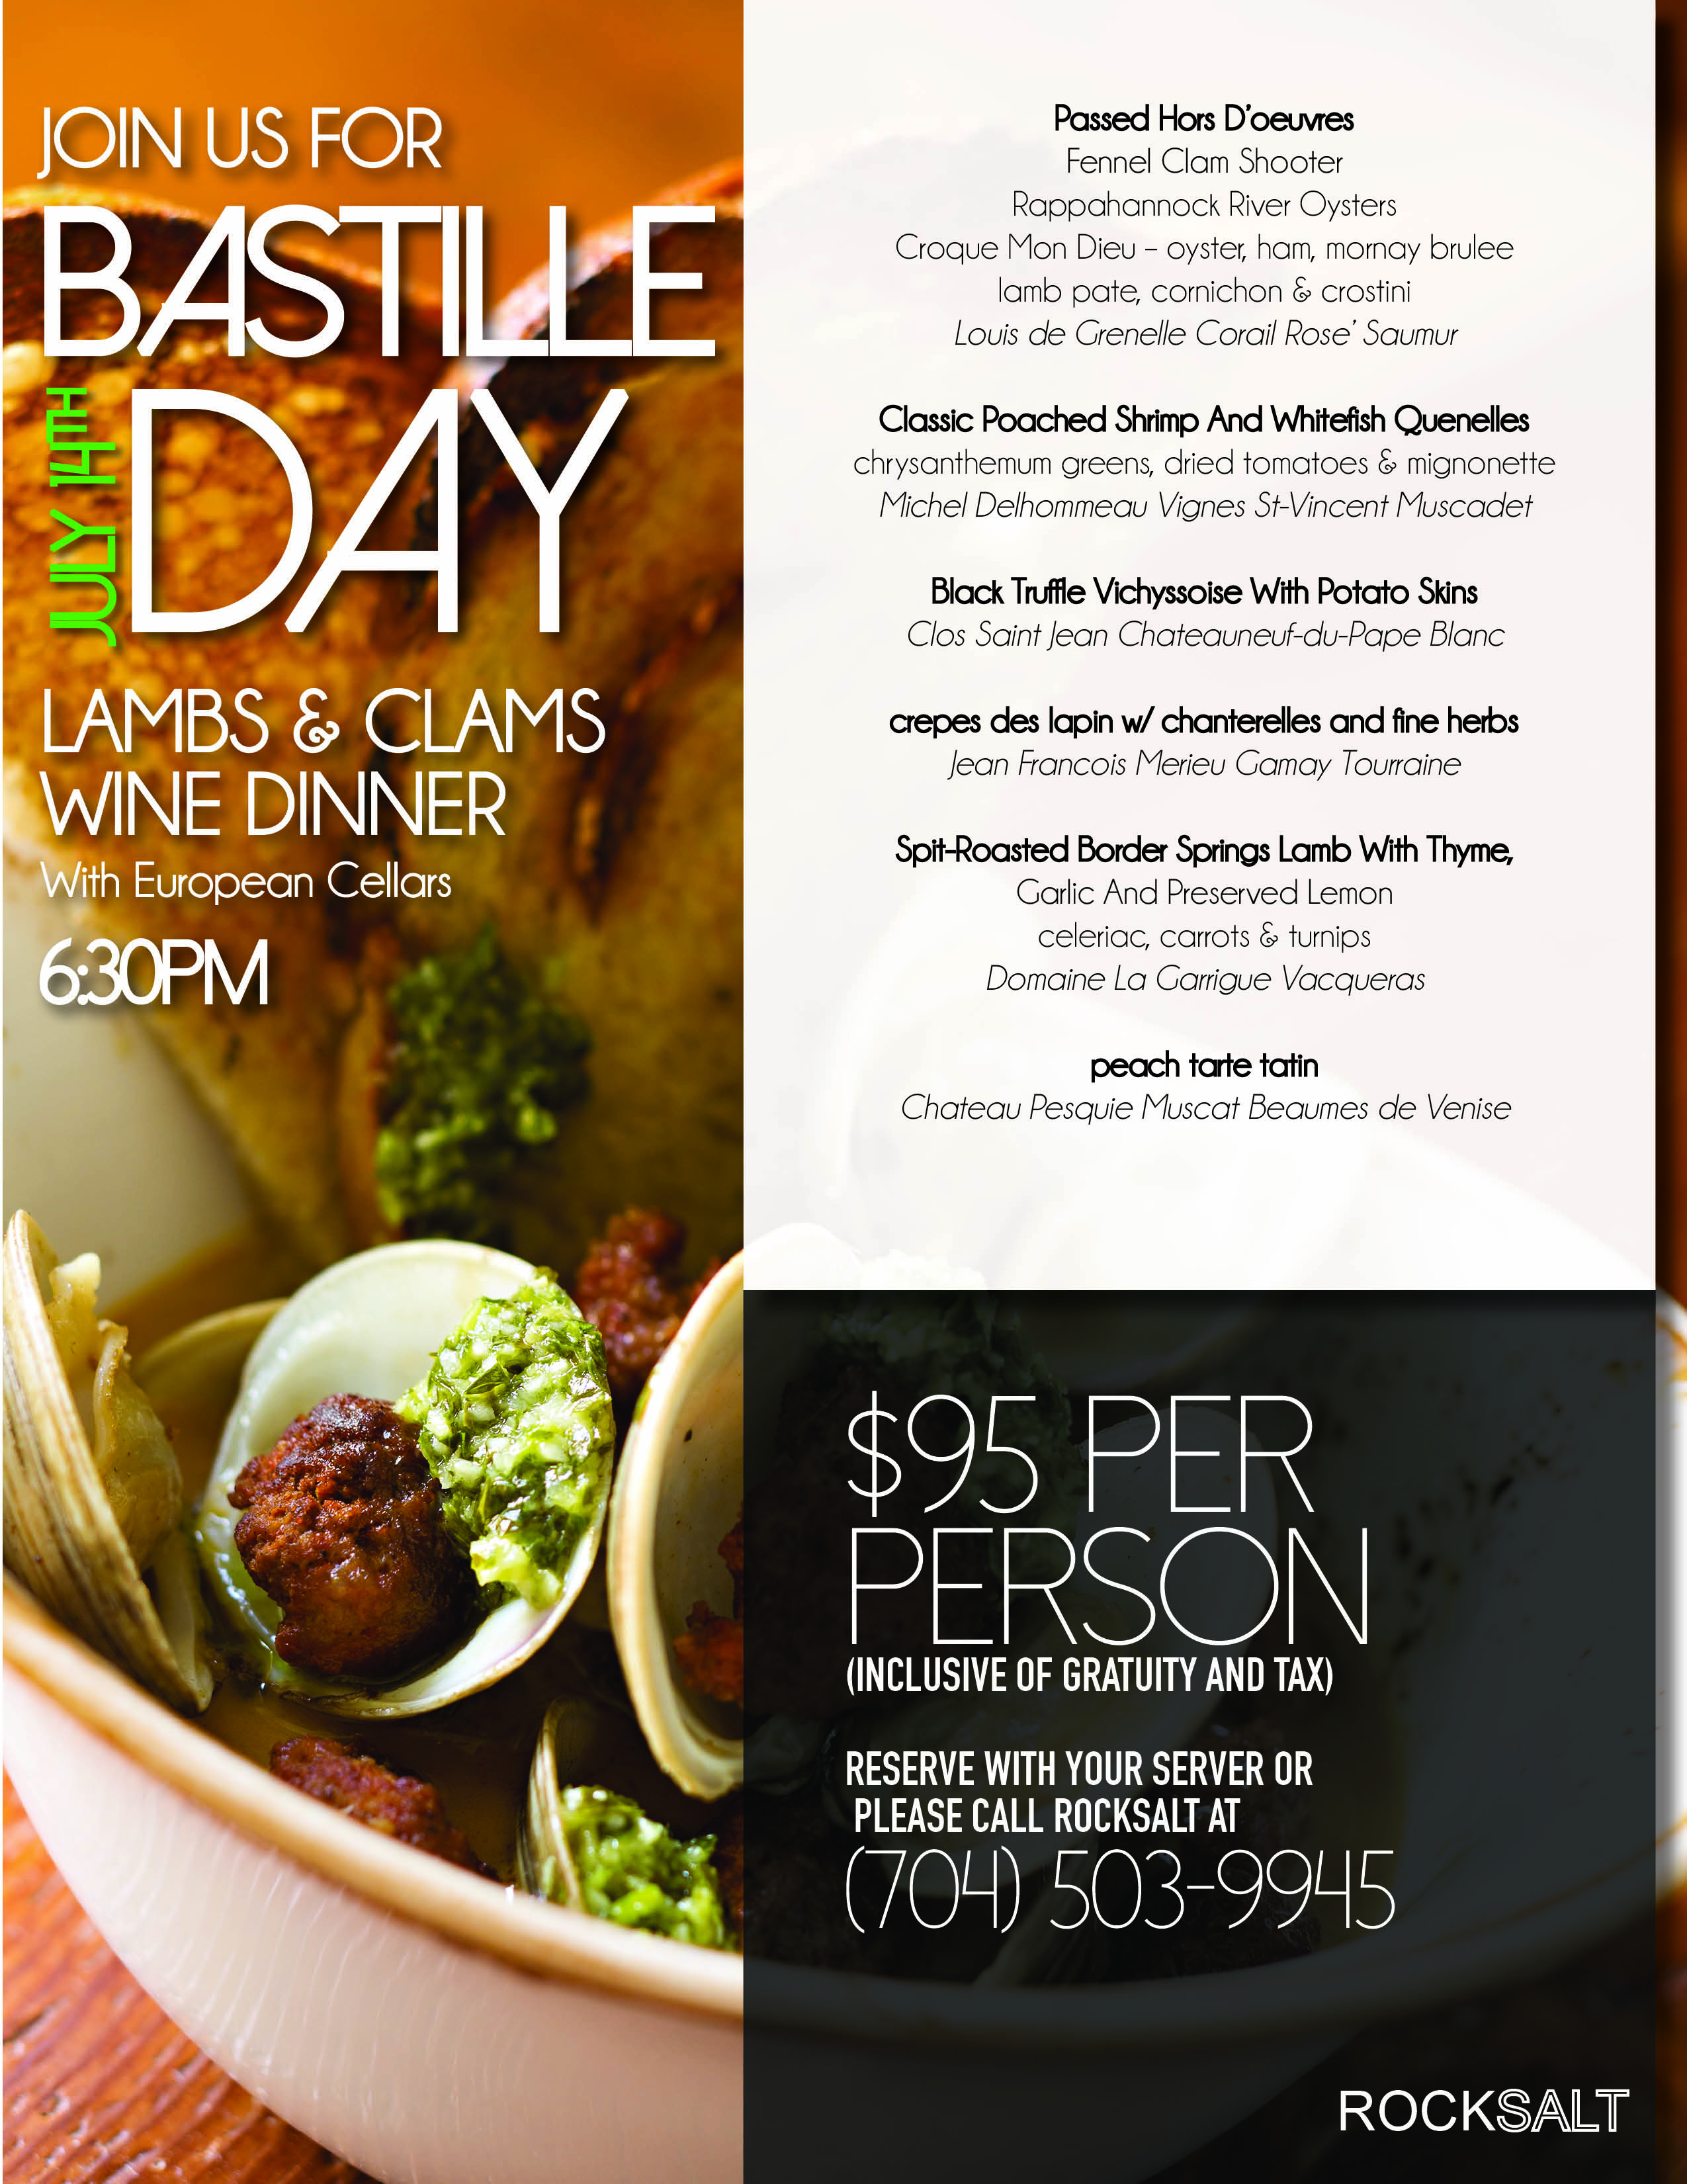 Bastille Day July 14th!